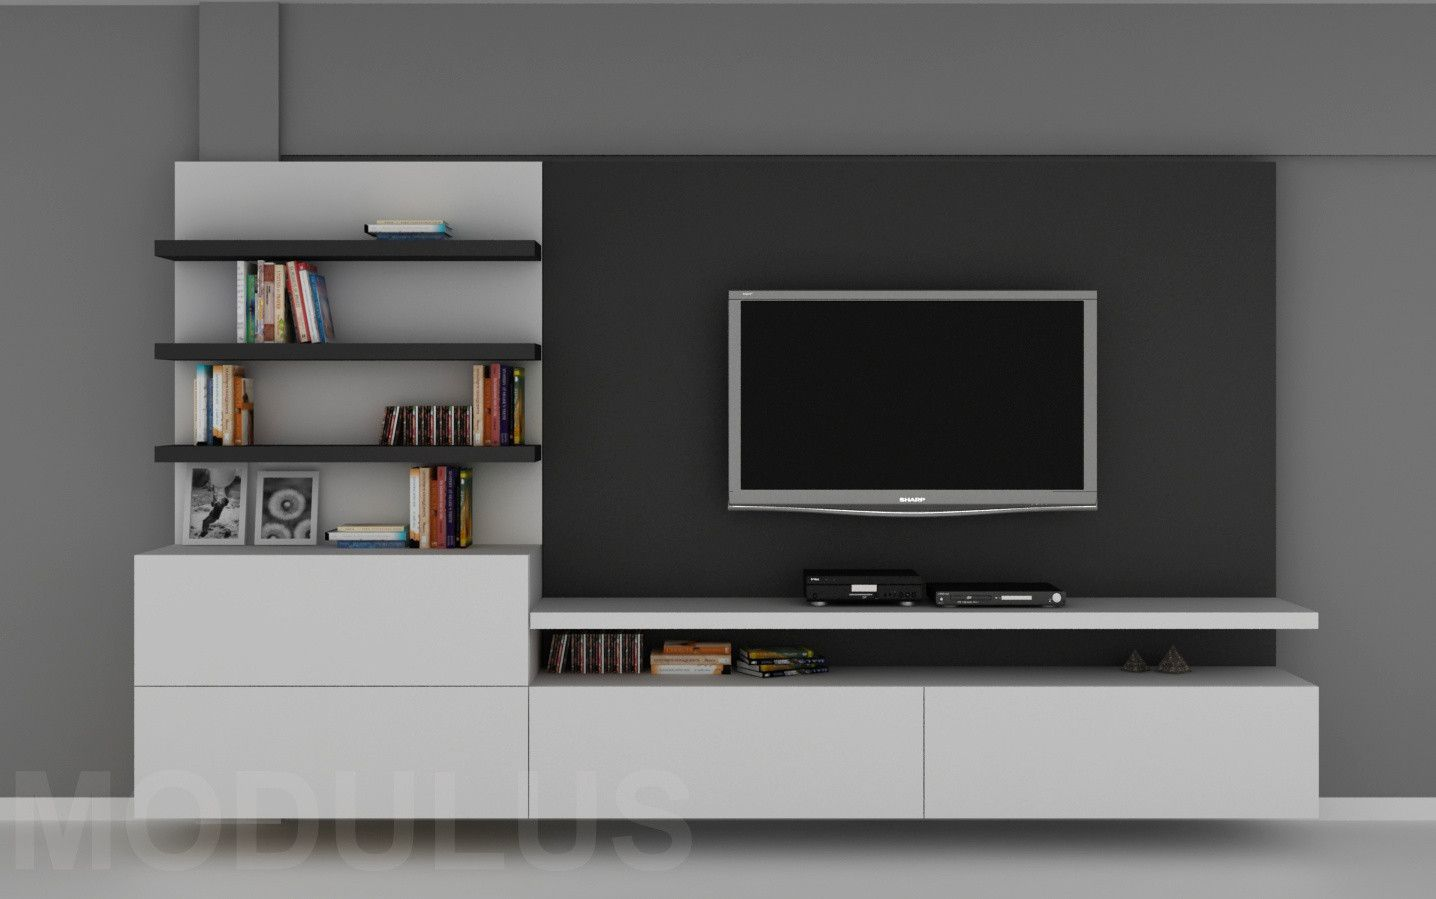 Design Tv Rack Cool Tv Rack With Tv Rack With Design Tv Rack Modulares Para Living Tv Lcd Led Wall Unit Muebles Para Tv